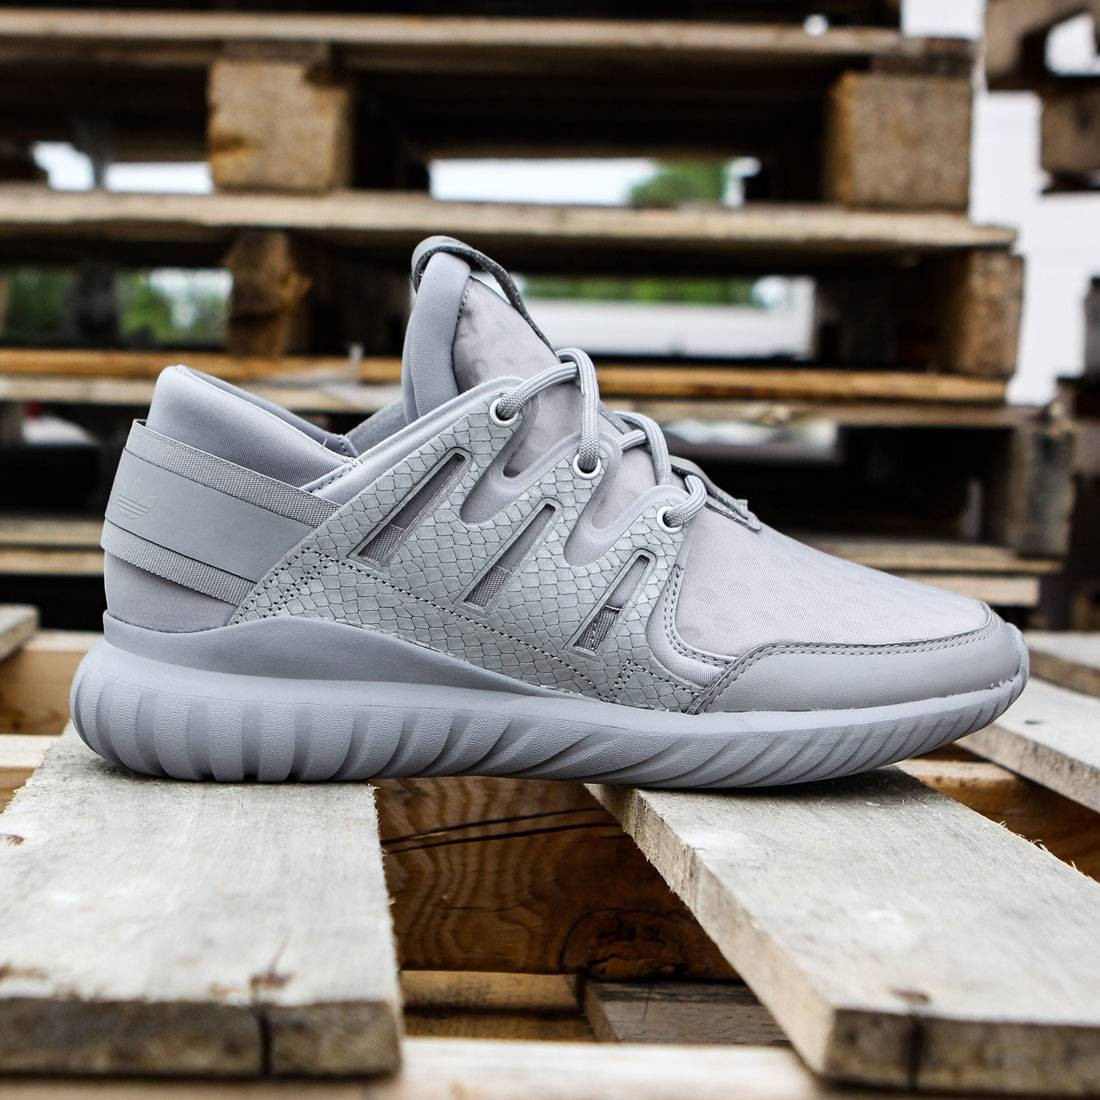 Adidas Originals Tubular X Green